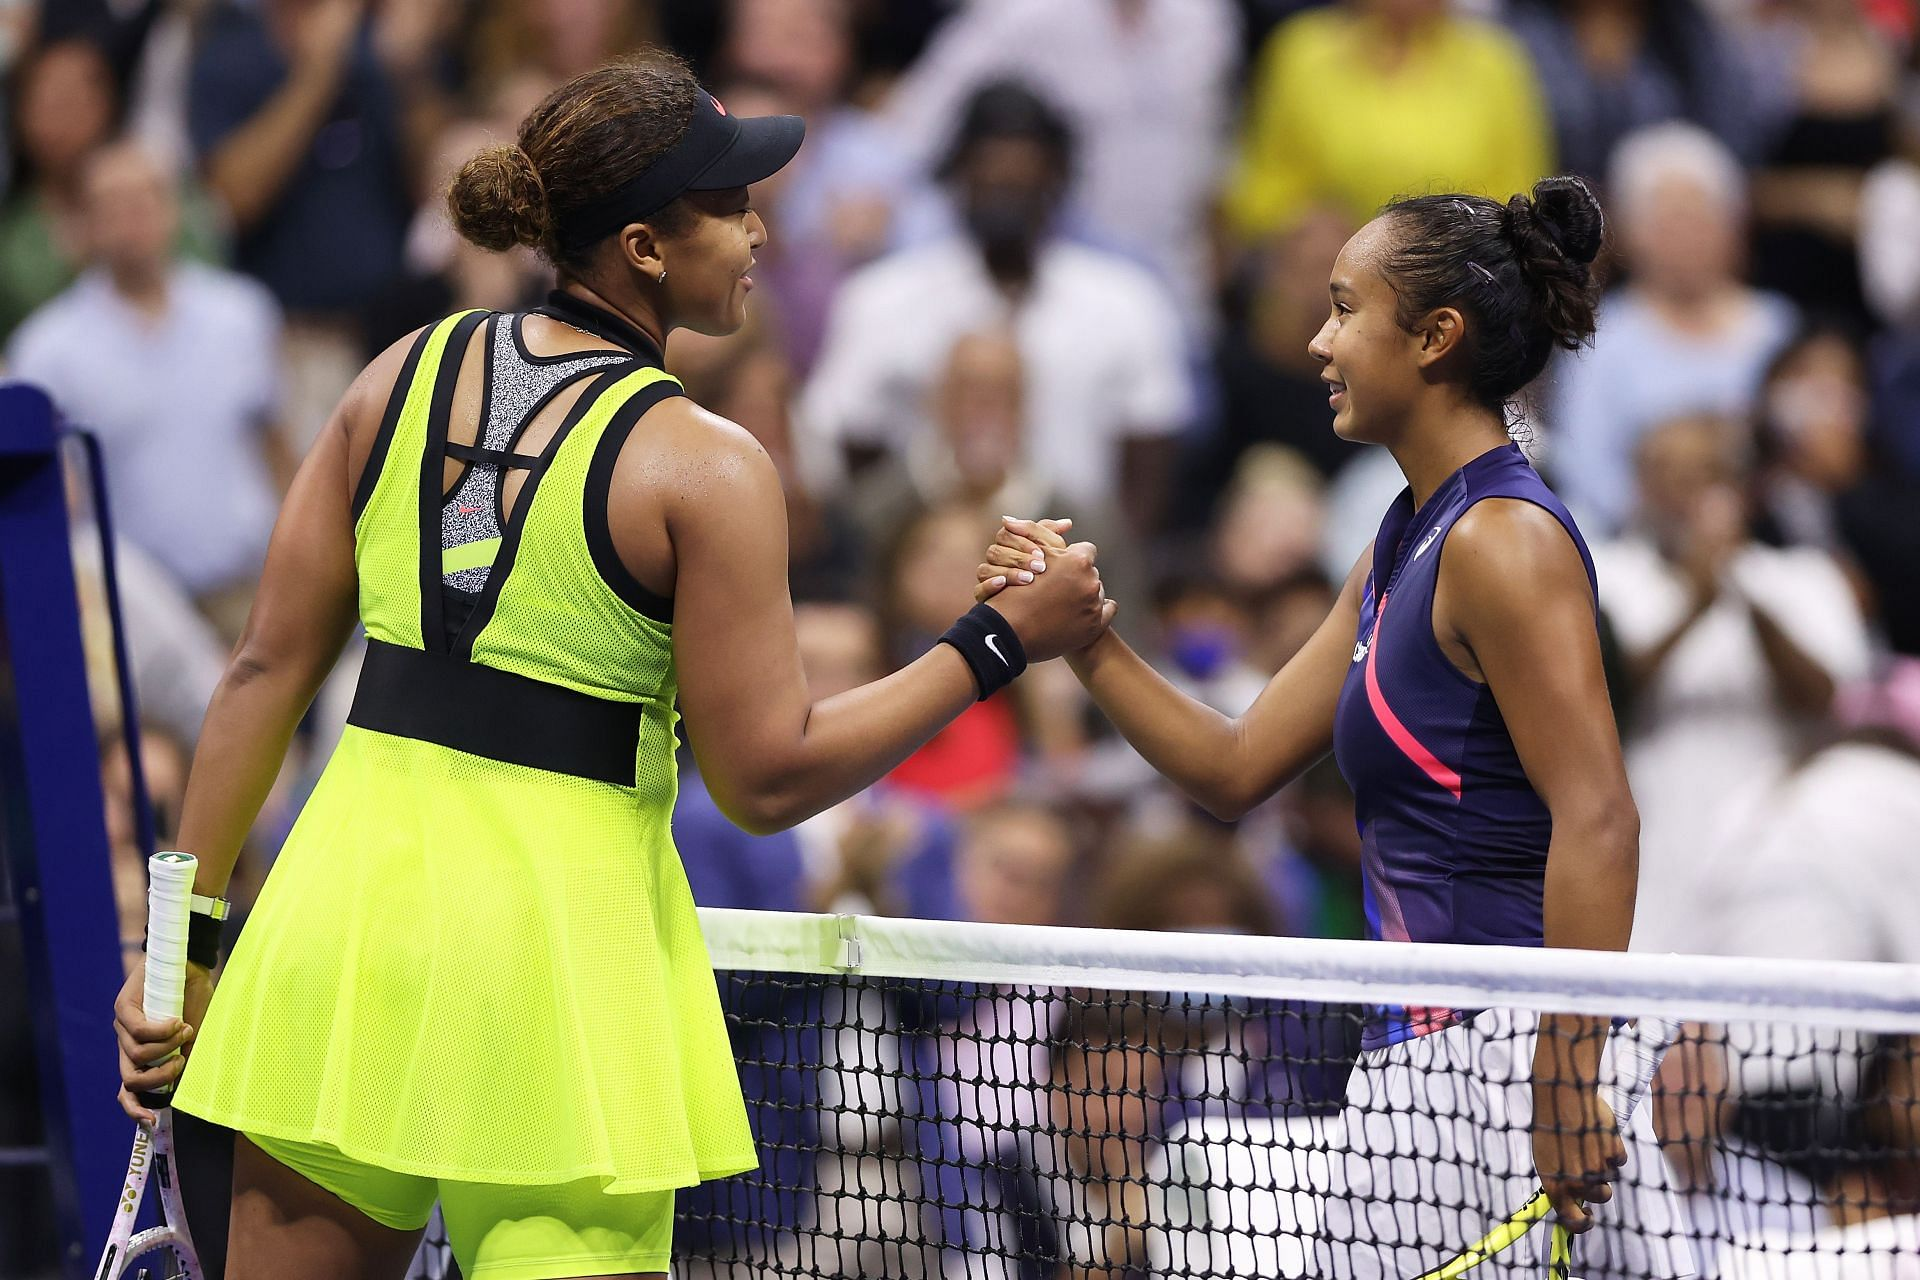 The 2021 US Open was the last tournament Naomi Osaka participated in.